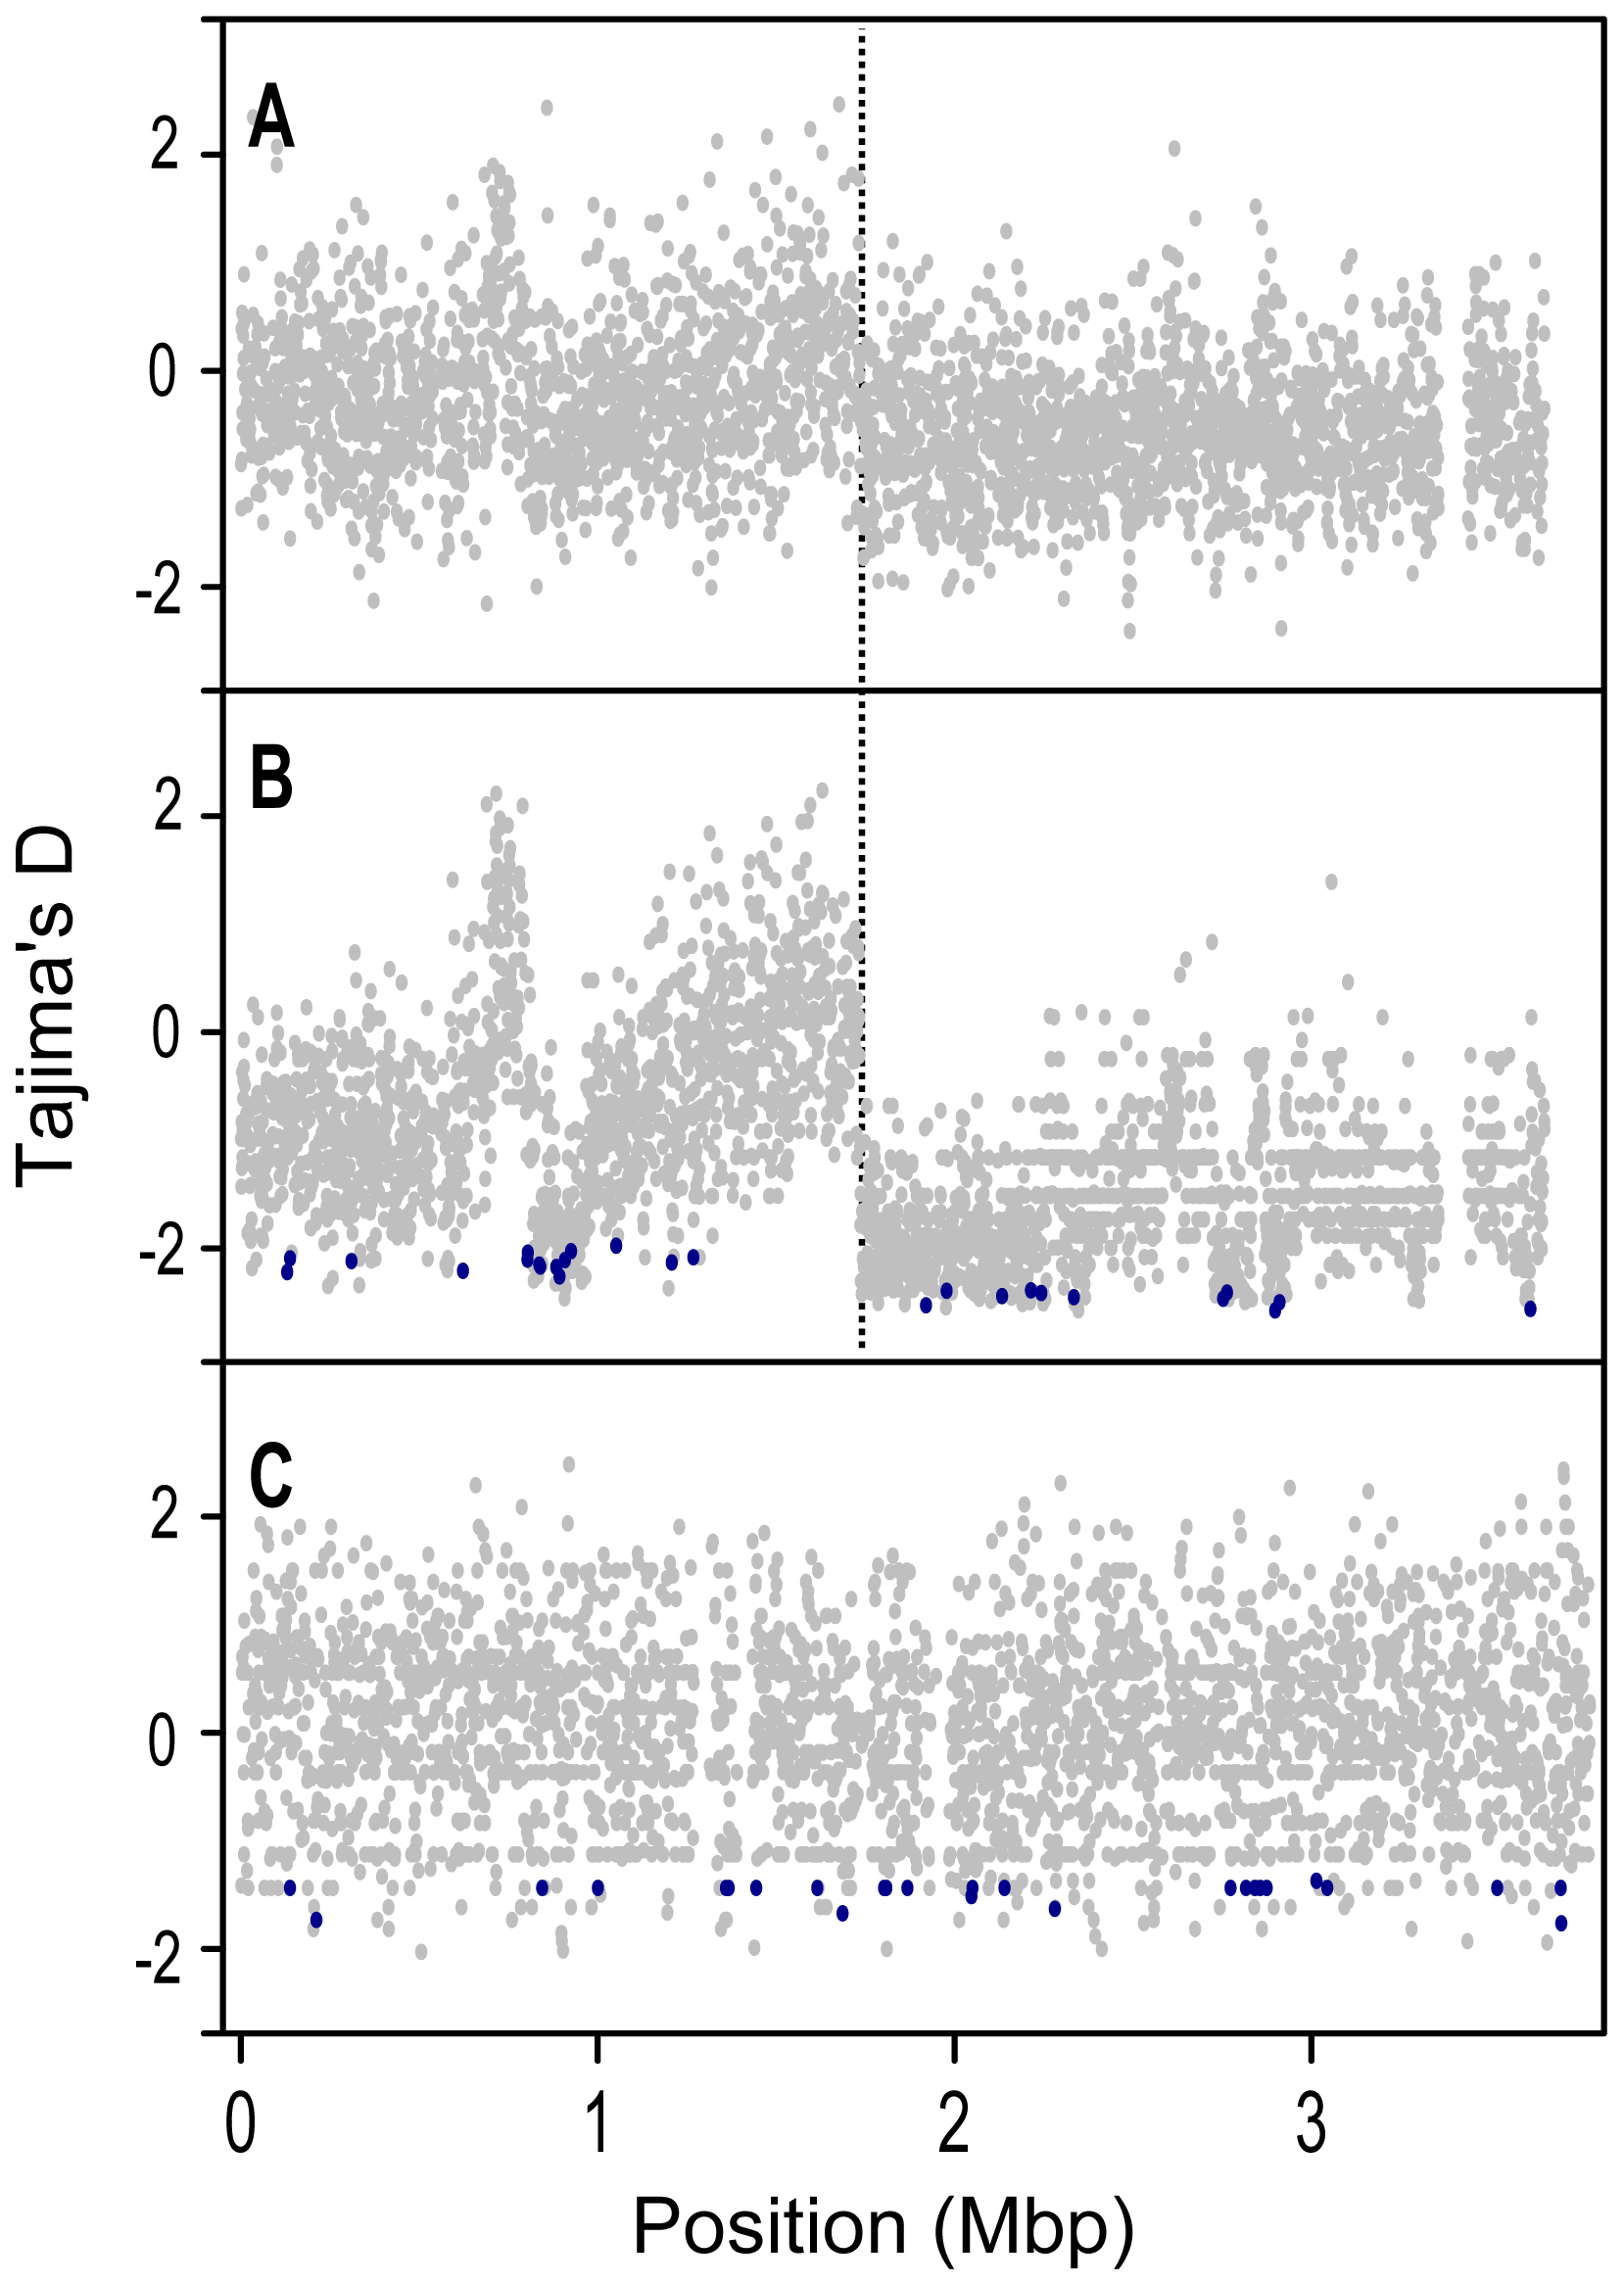 Tajima's D (<i>D<sub>T</sub></i>) values for protein coding genes along the length of the chromosome.